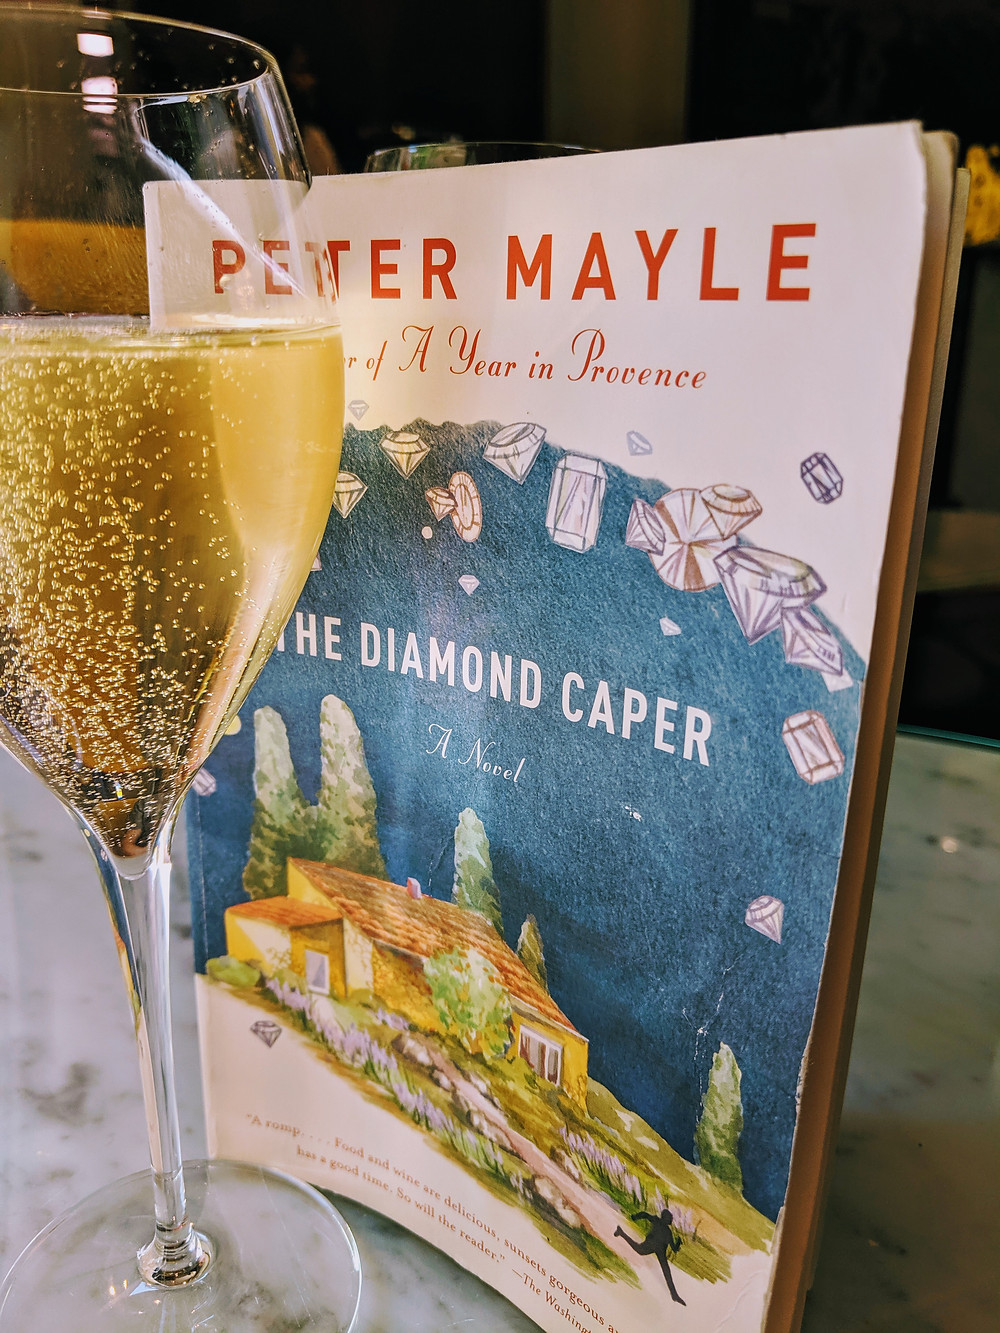 A glass of champagne and a book